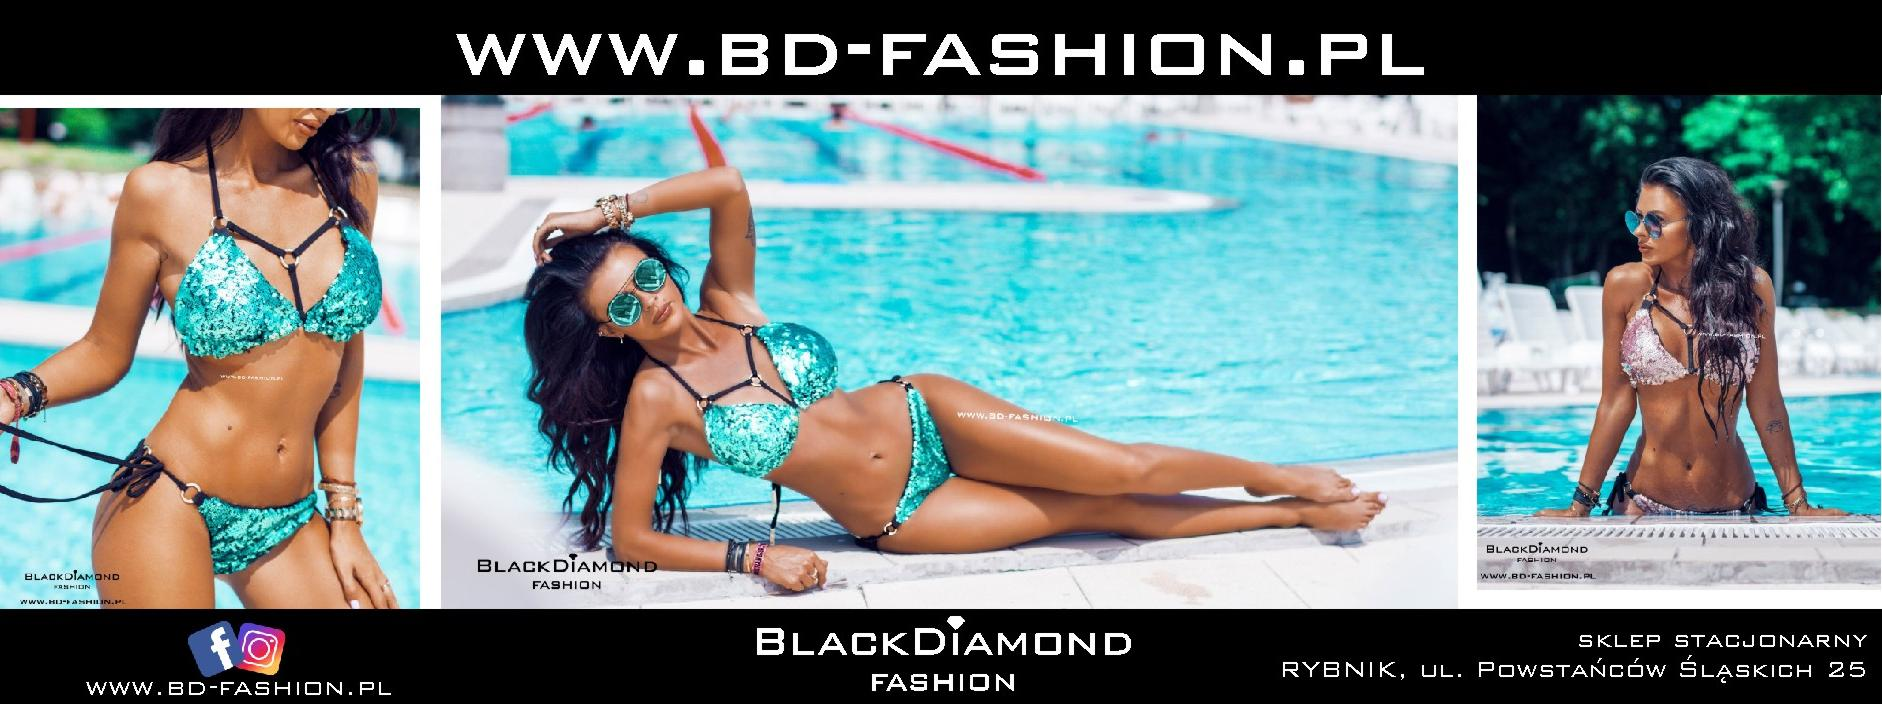 BlackDiamondFashion